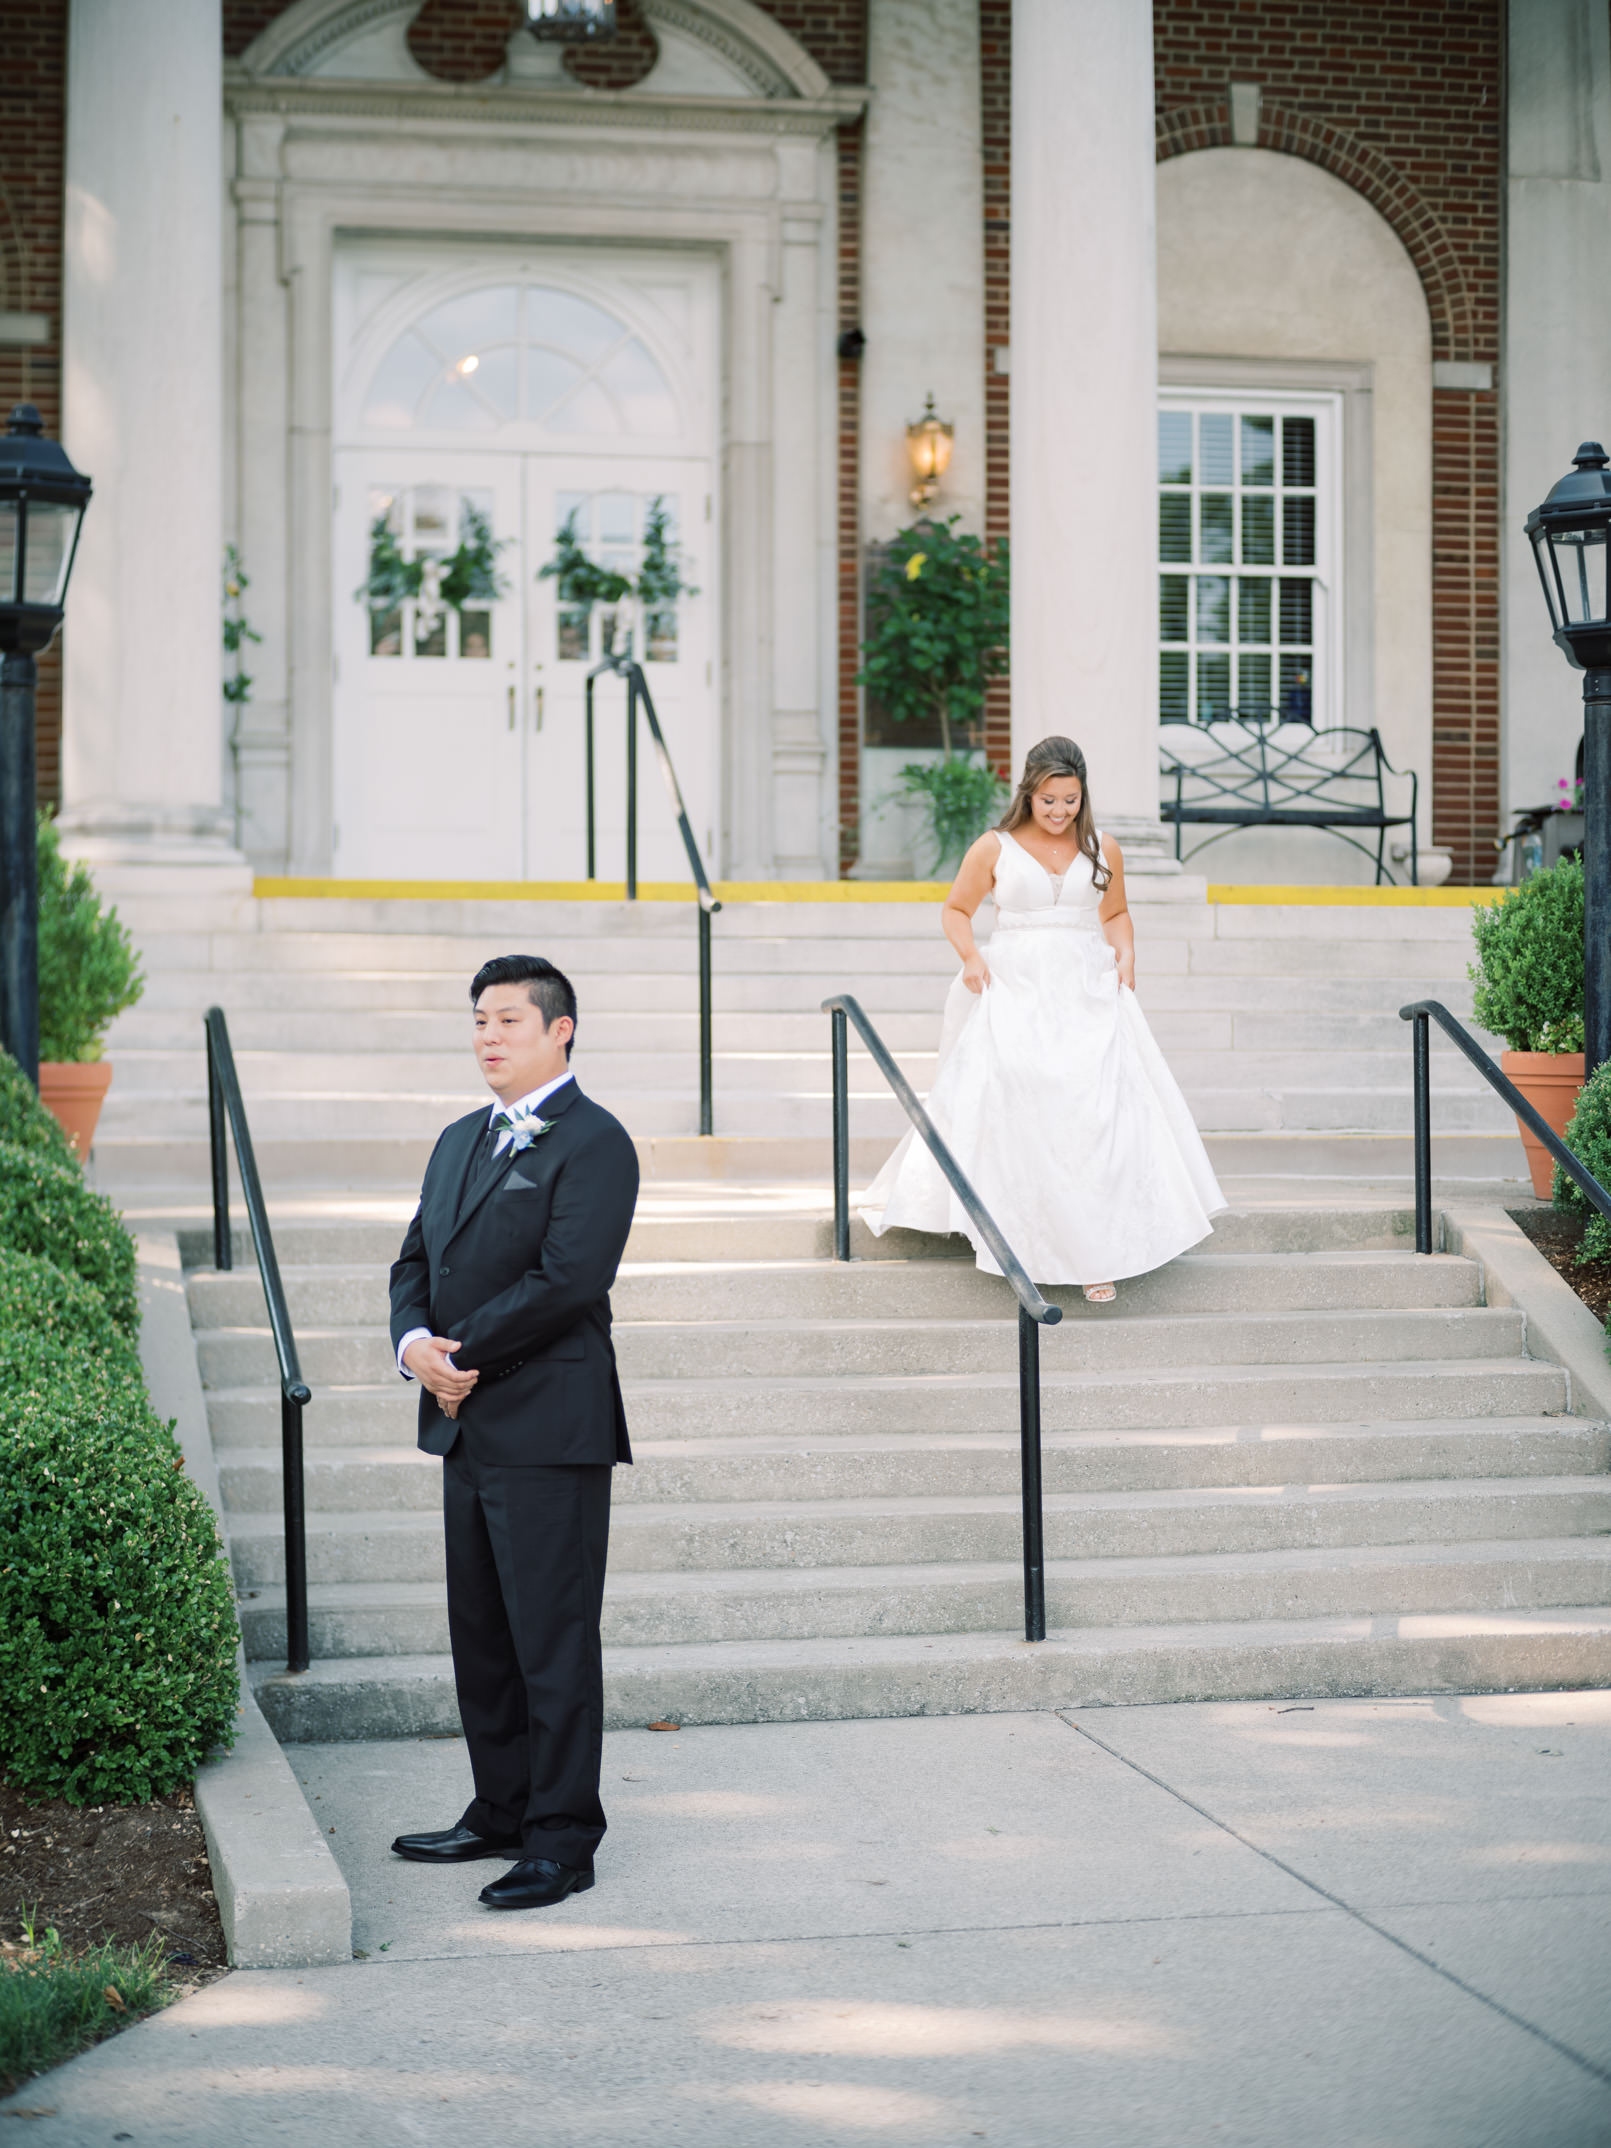 Image at a historic wedding venue in Louisville, Kentucky of bride approaching the anticipating groom during first look